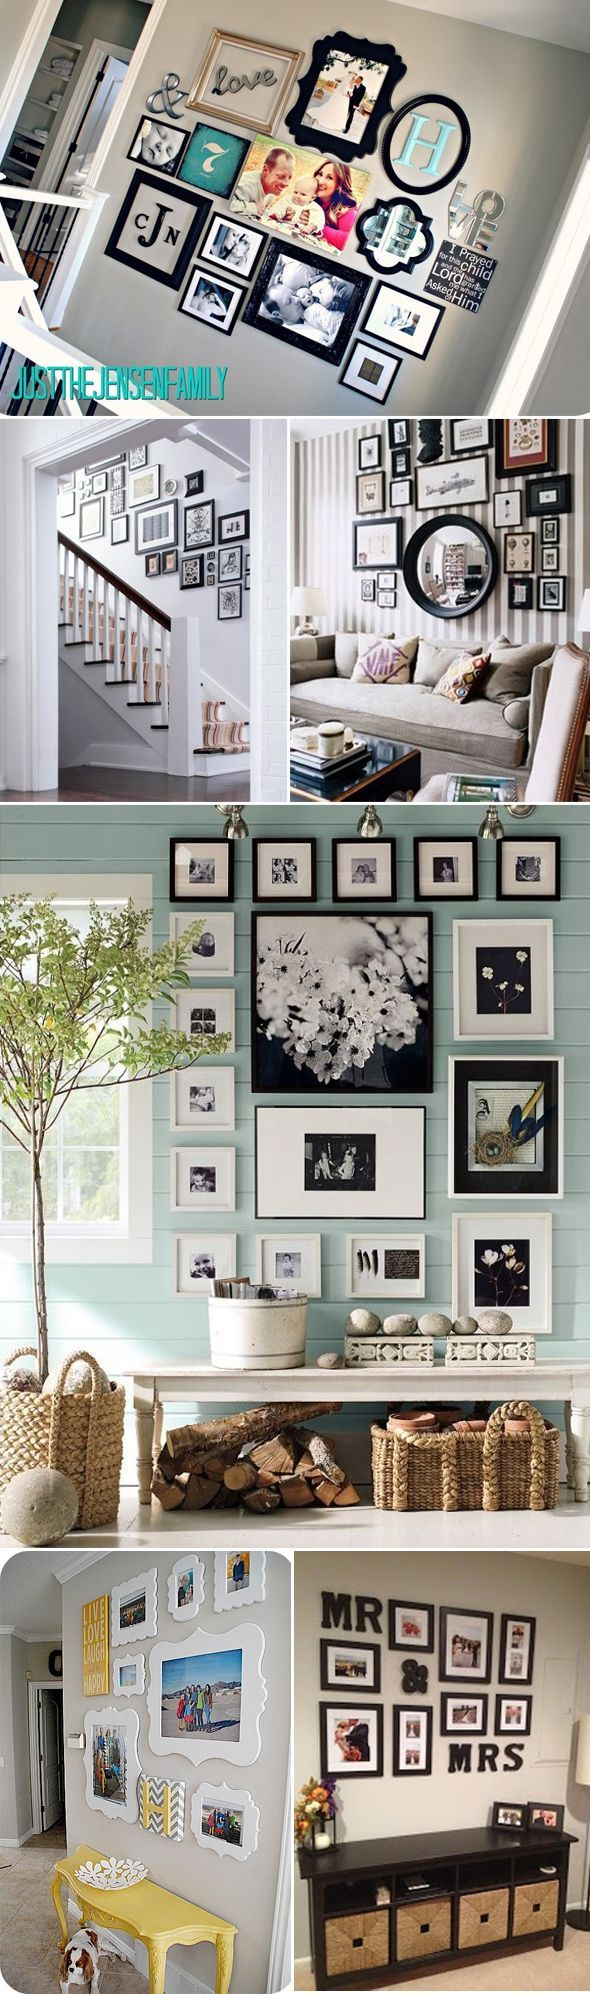 Photo wall Ideas - would be perfect around or with my new mirror